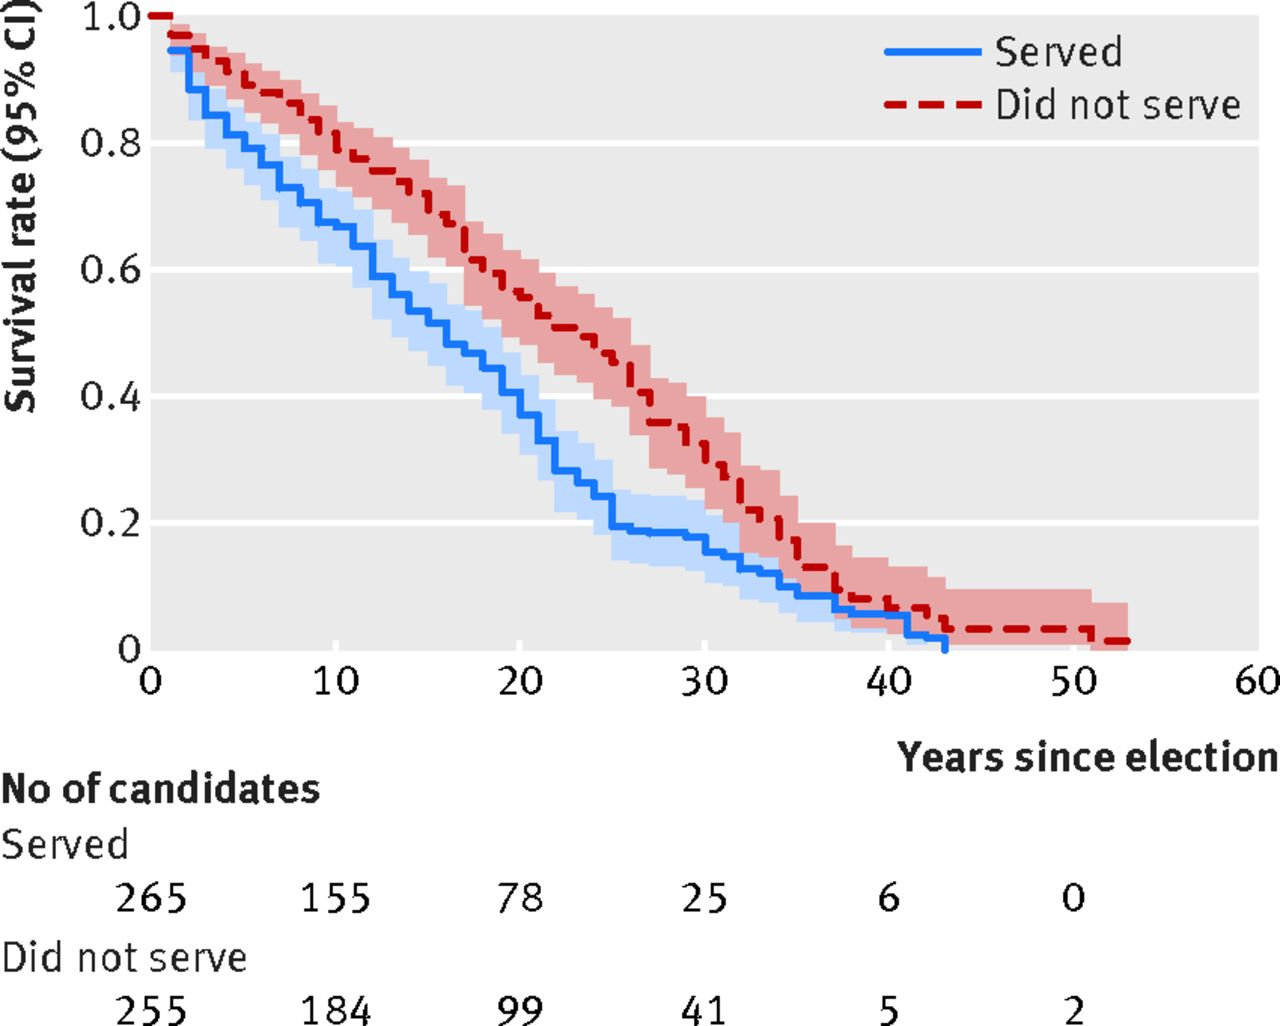 How To Cite A Fig 1 Kaplanmeier Survival Curves For Candidates Elected  To Head Of Government And Runnersup Harvard Style